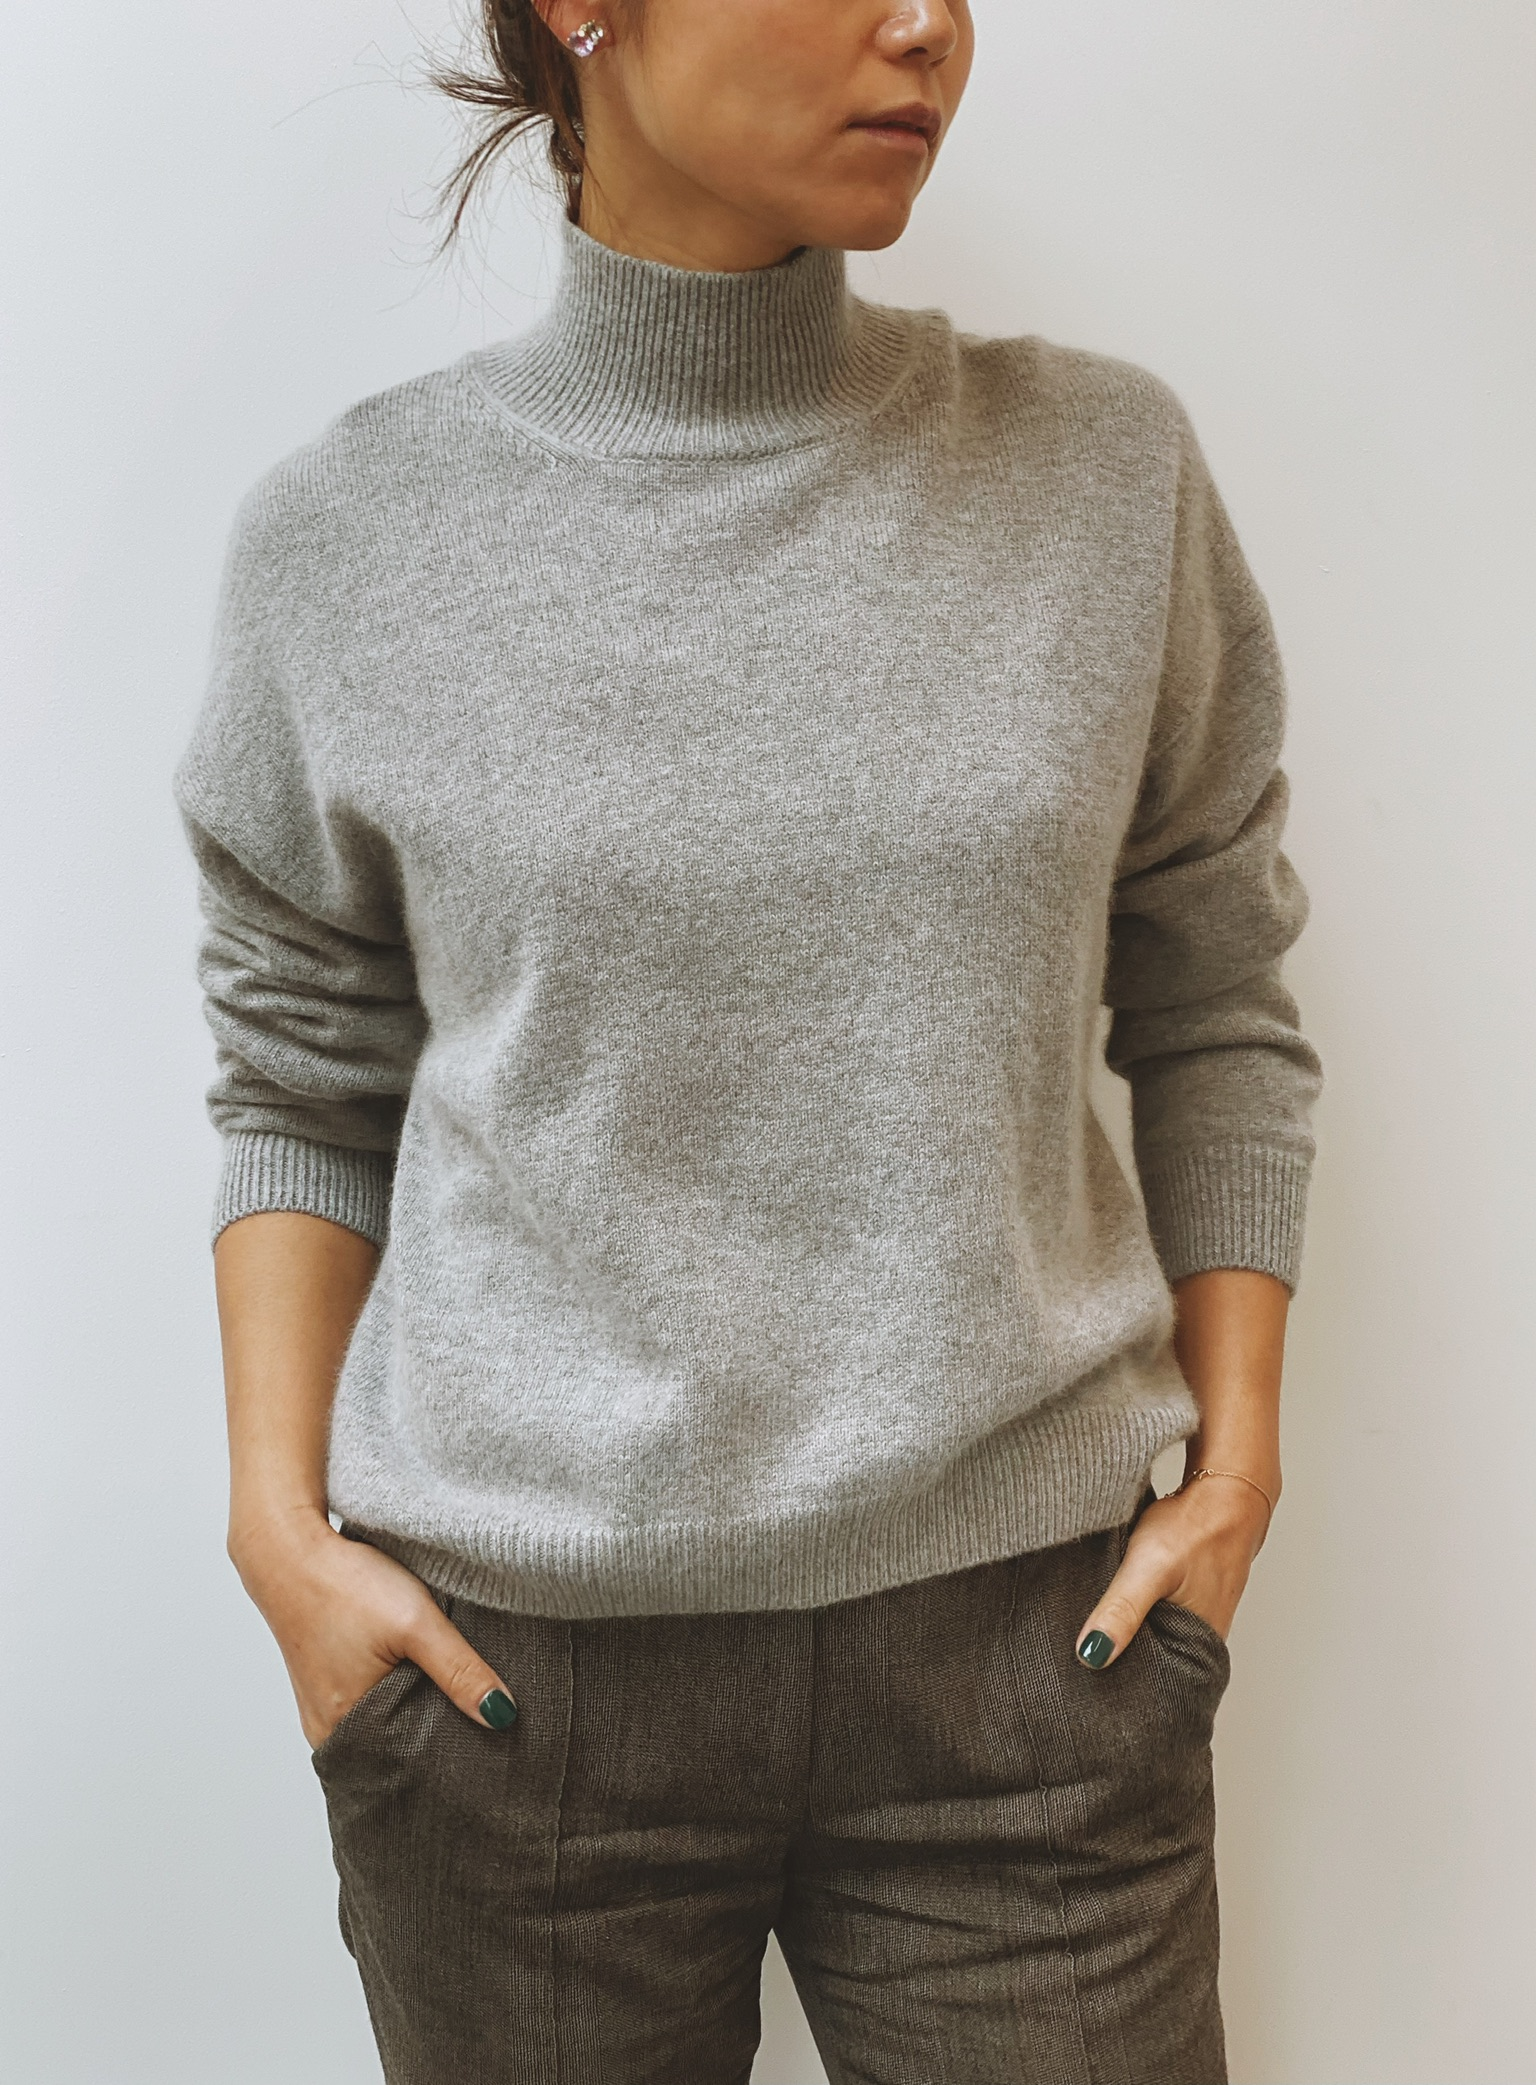 Lilly Cashmere Jumper - Grey by Curated Crowd Collective on curated-crowd.com